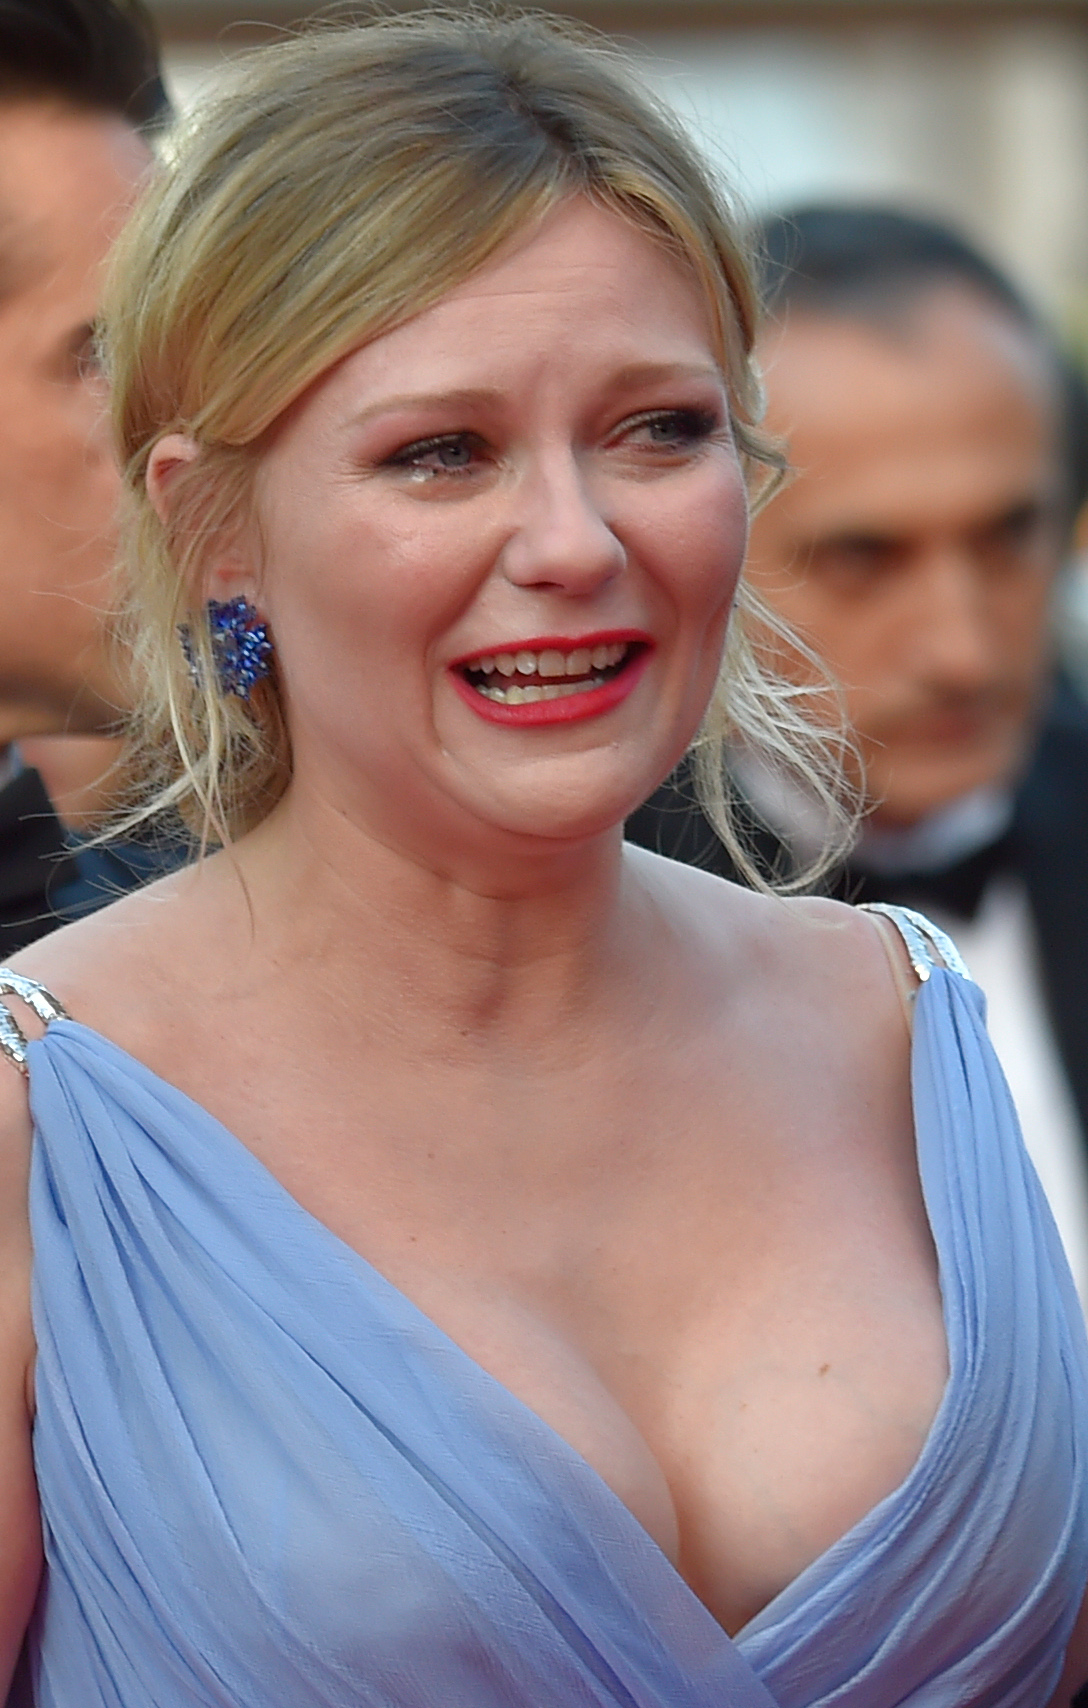 Kirsten Dunst Explains Her Teary Outburst At Cannes 2017 Premiere Of The Beguiled